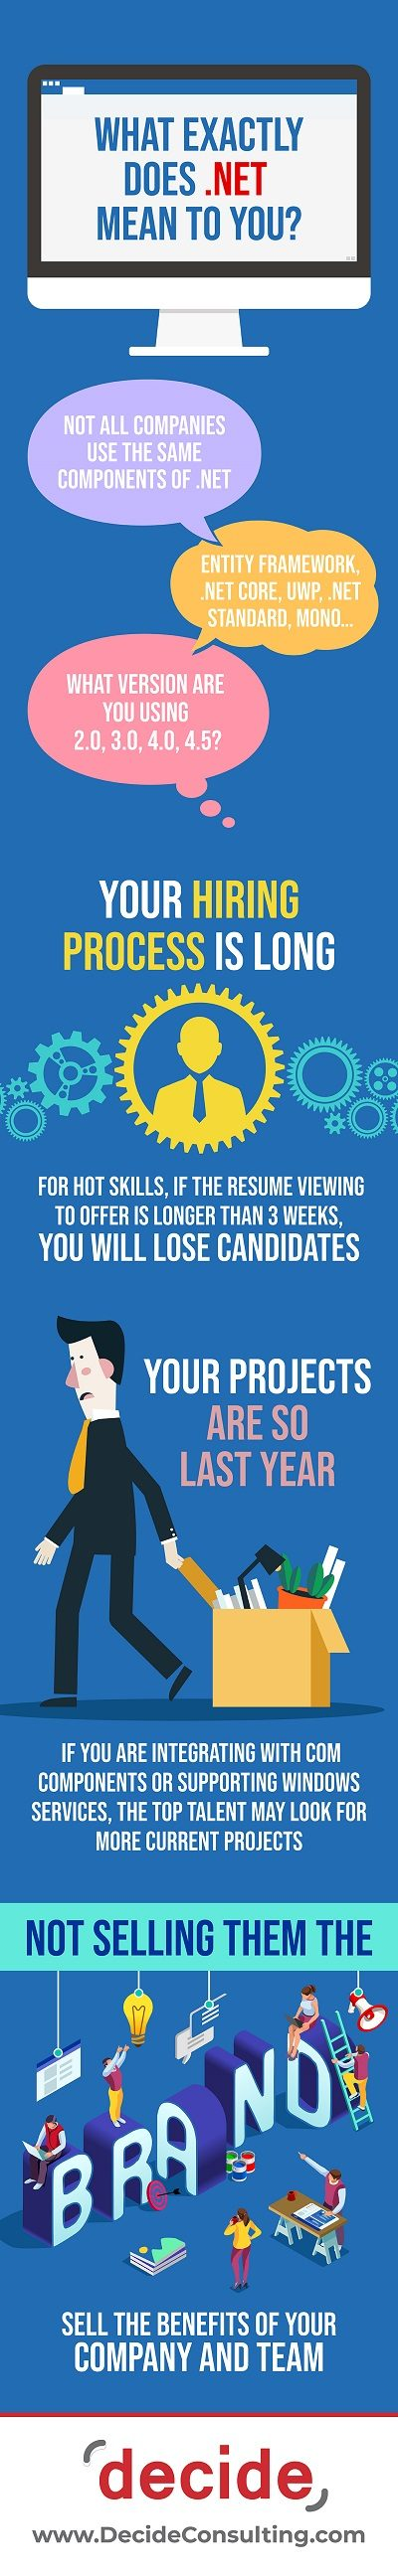 Infographic - What to Do When You Have Two Strong Tech Candidates